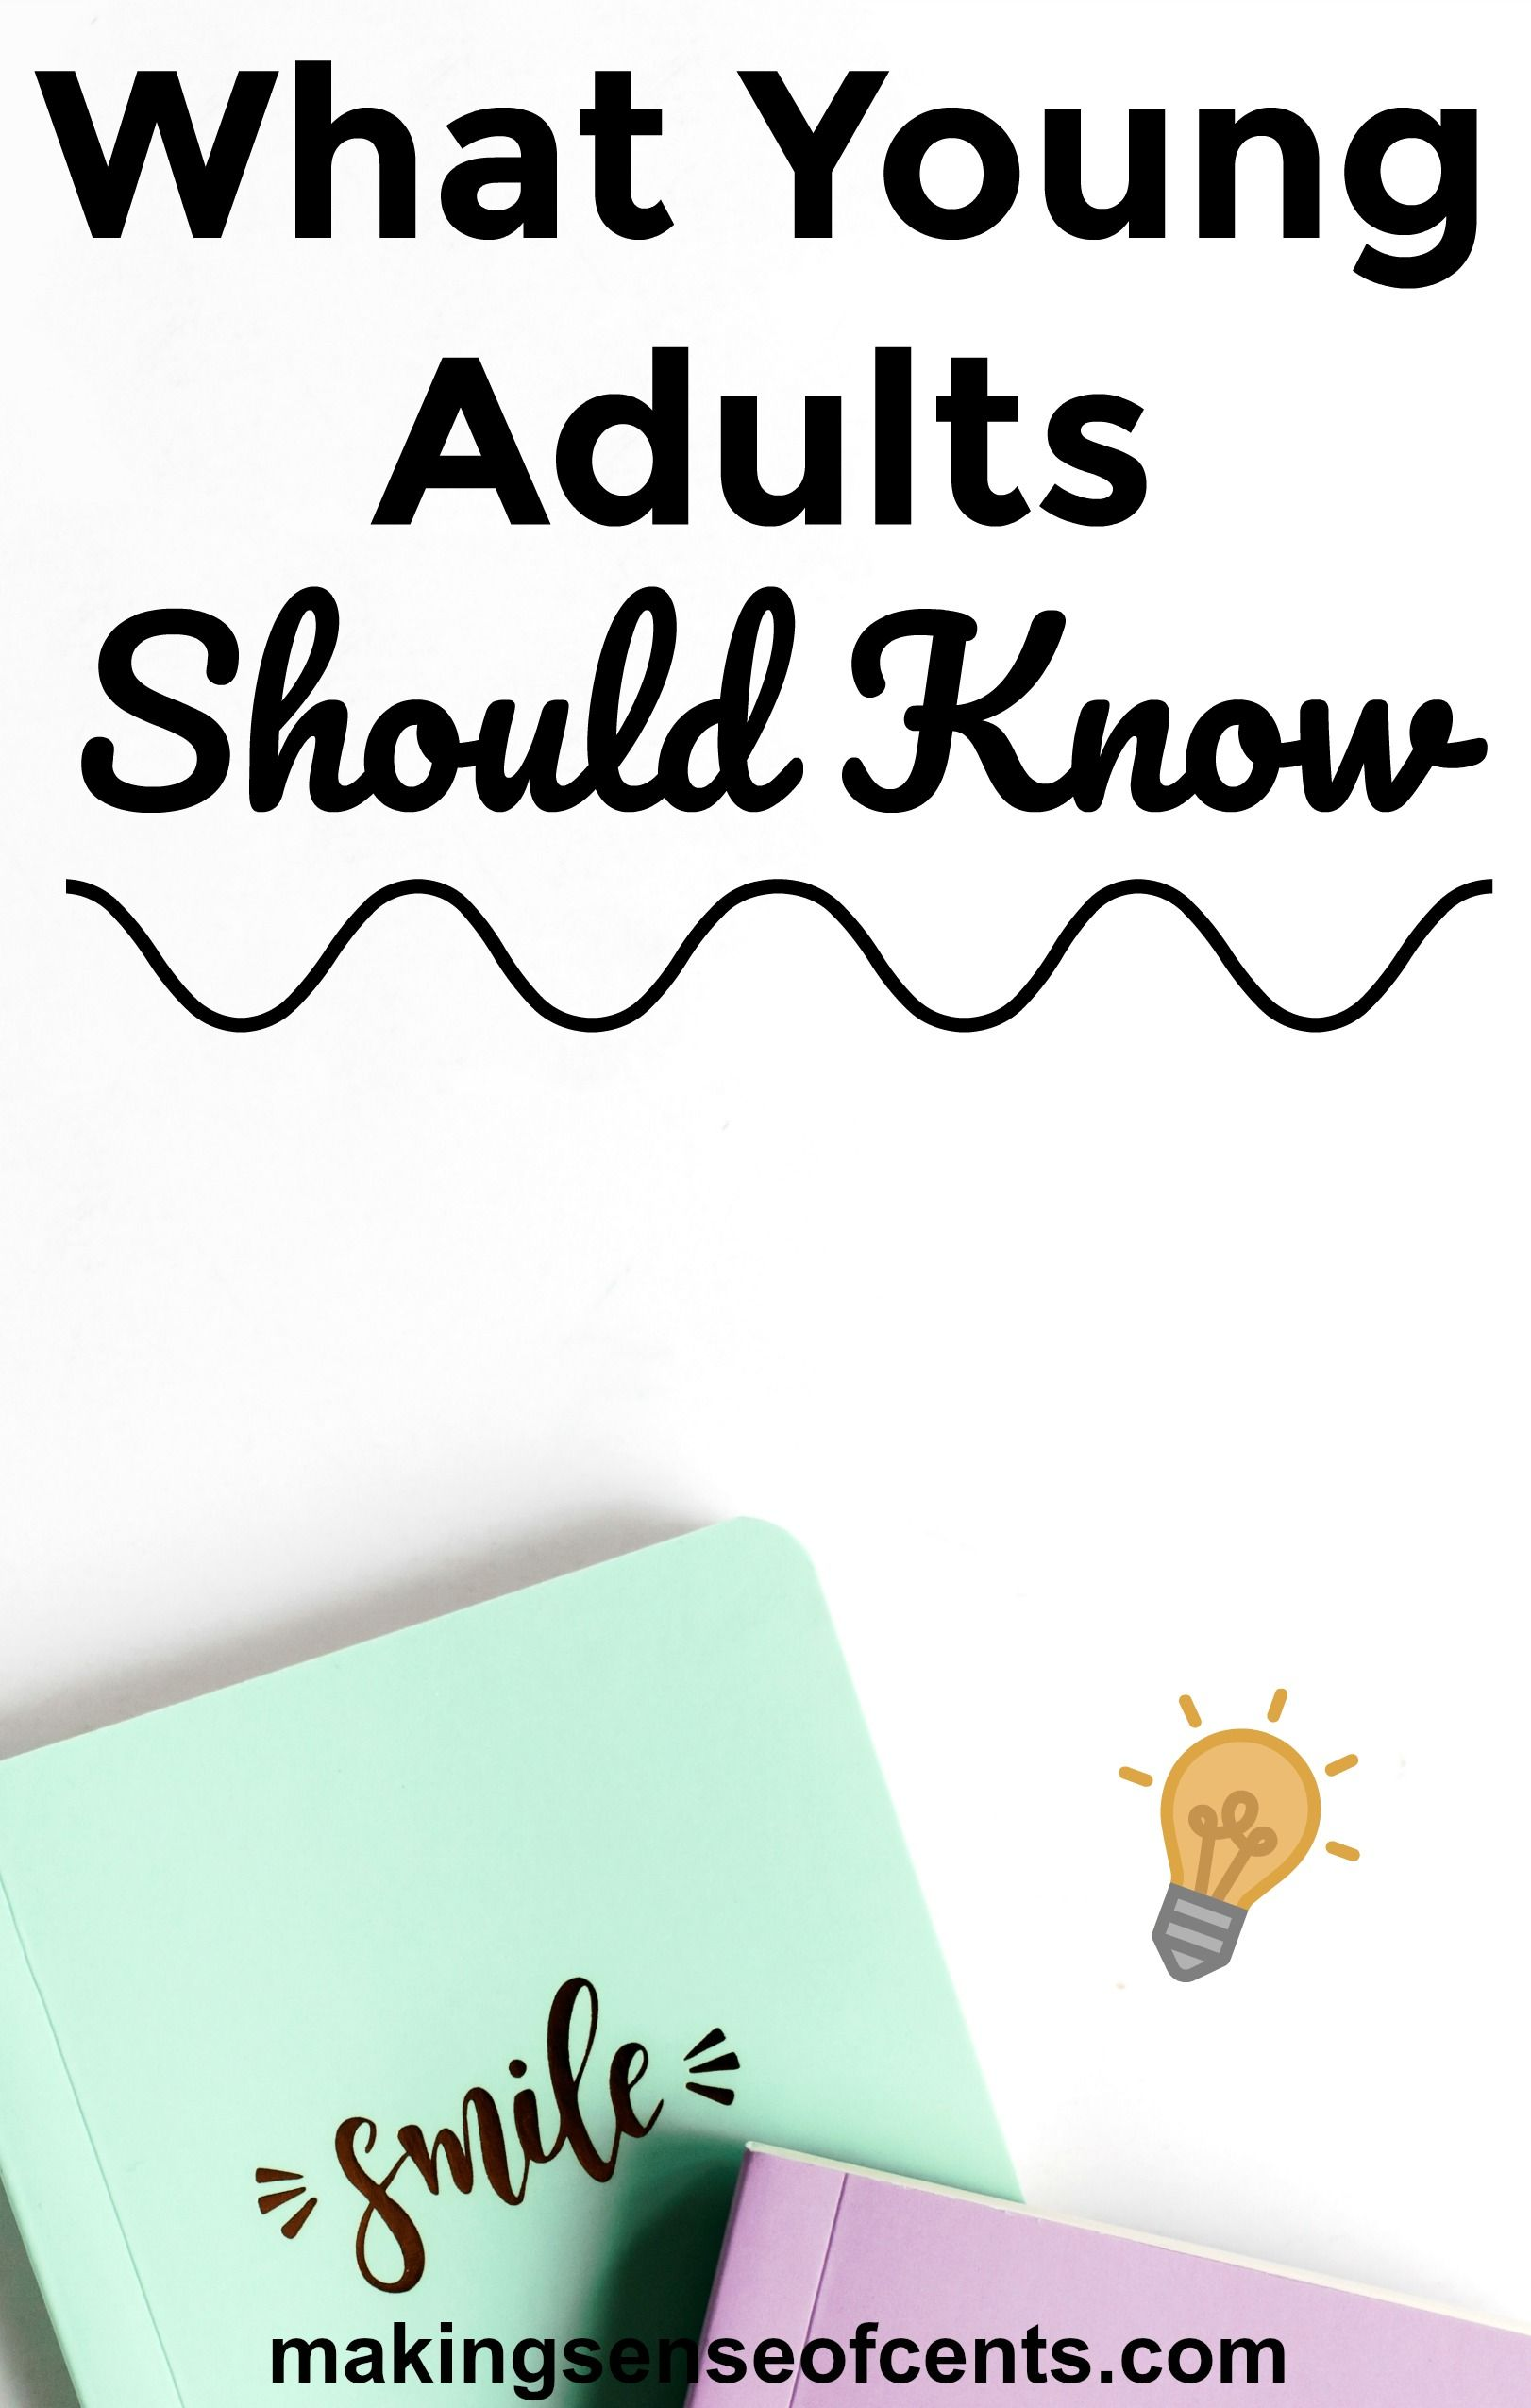 What Young Adults Should Know